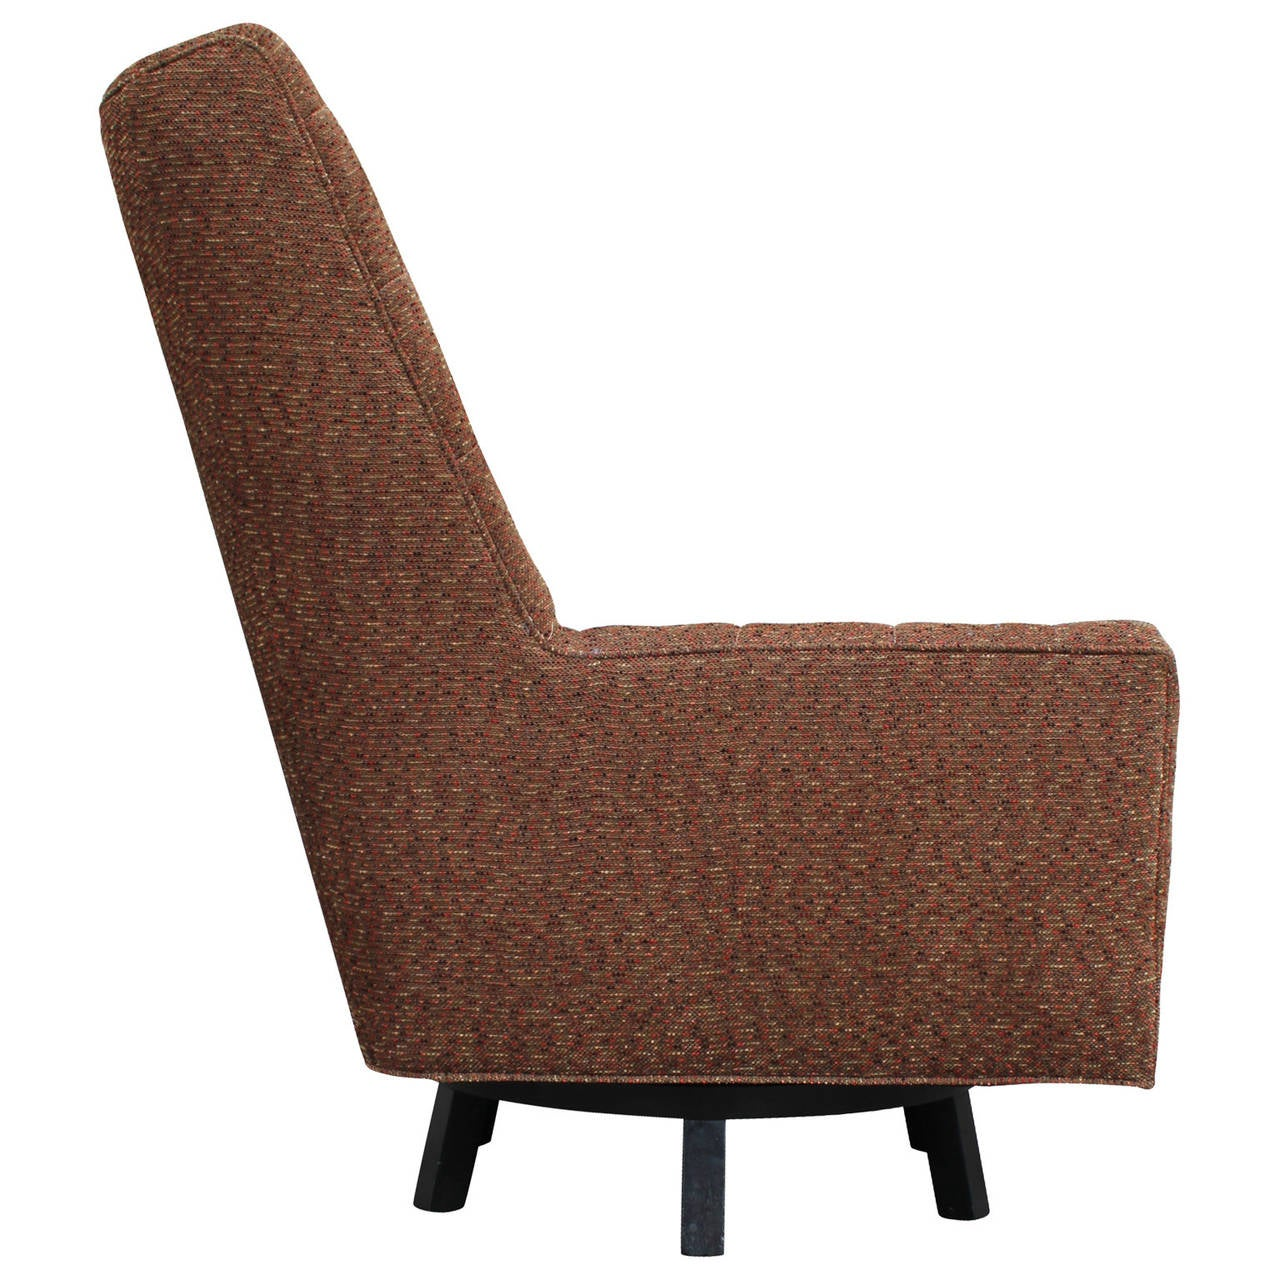 Upholstered Swivel Chairs Bing Images Mega Deals and Coupons : harveyprobber3l from printable.megadealscoupons.net size 1280 x 1280 jpeg 186kB